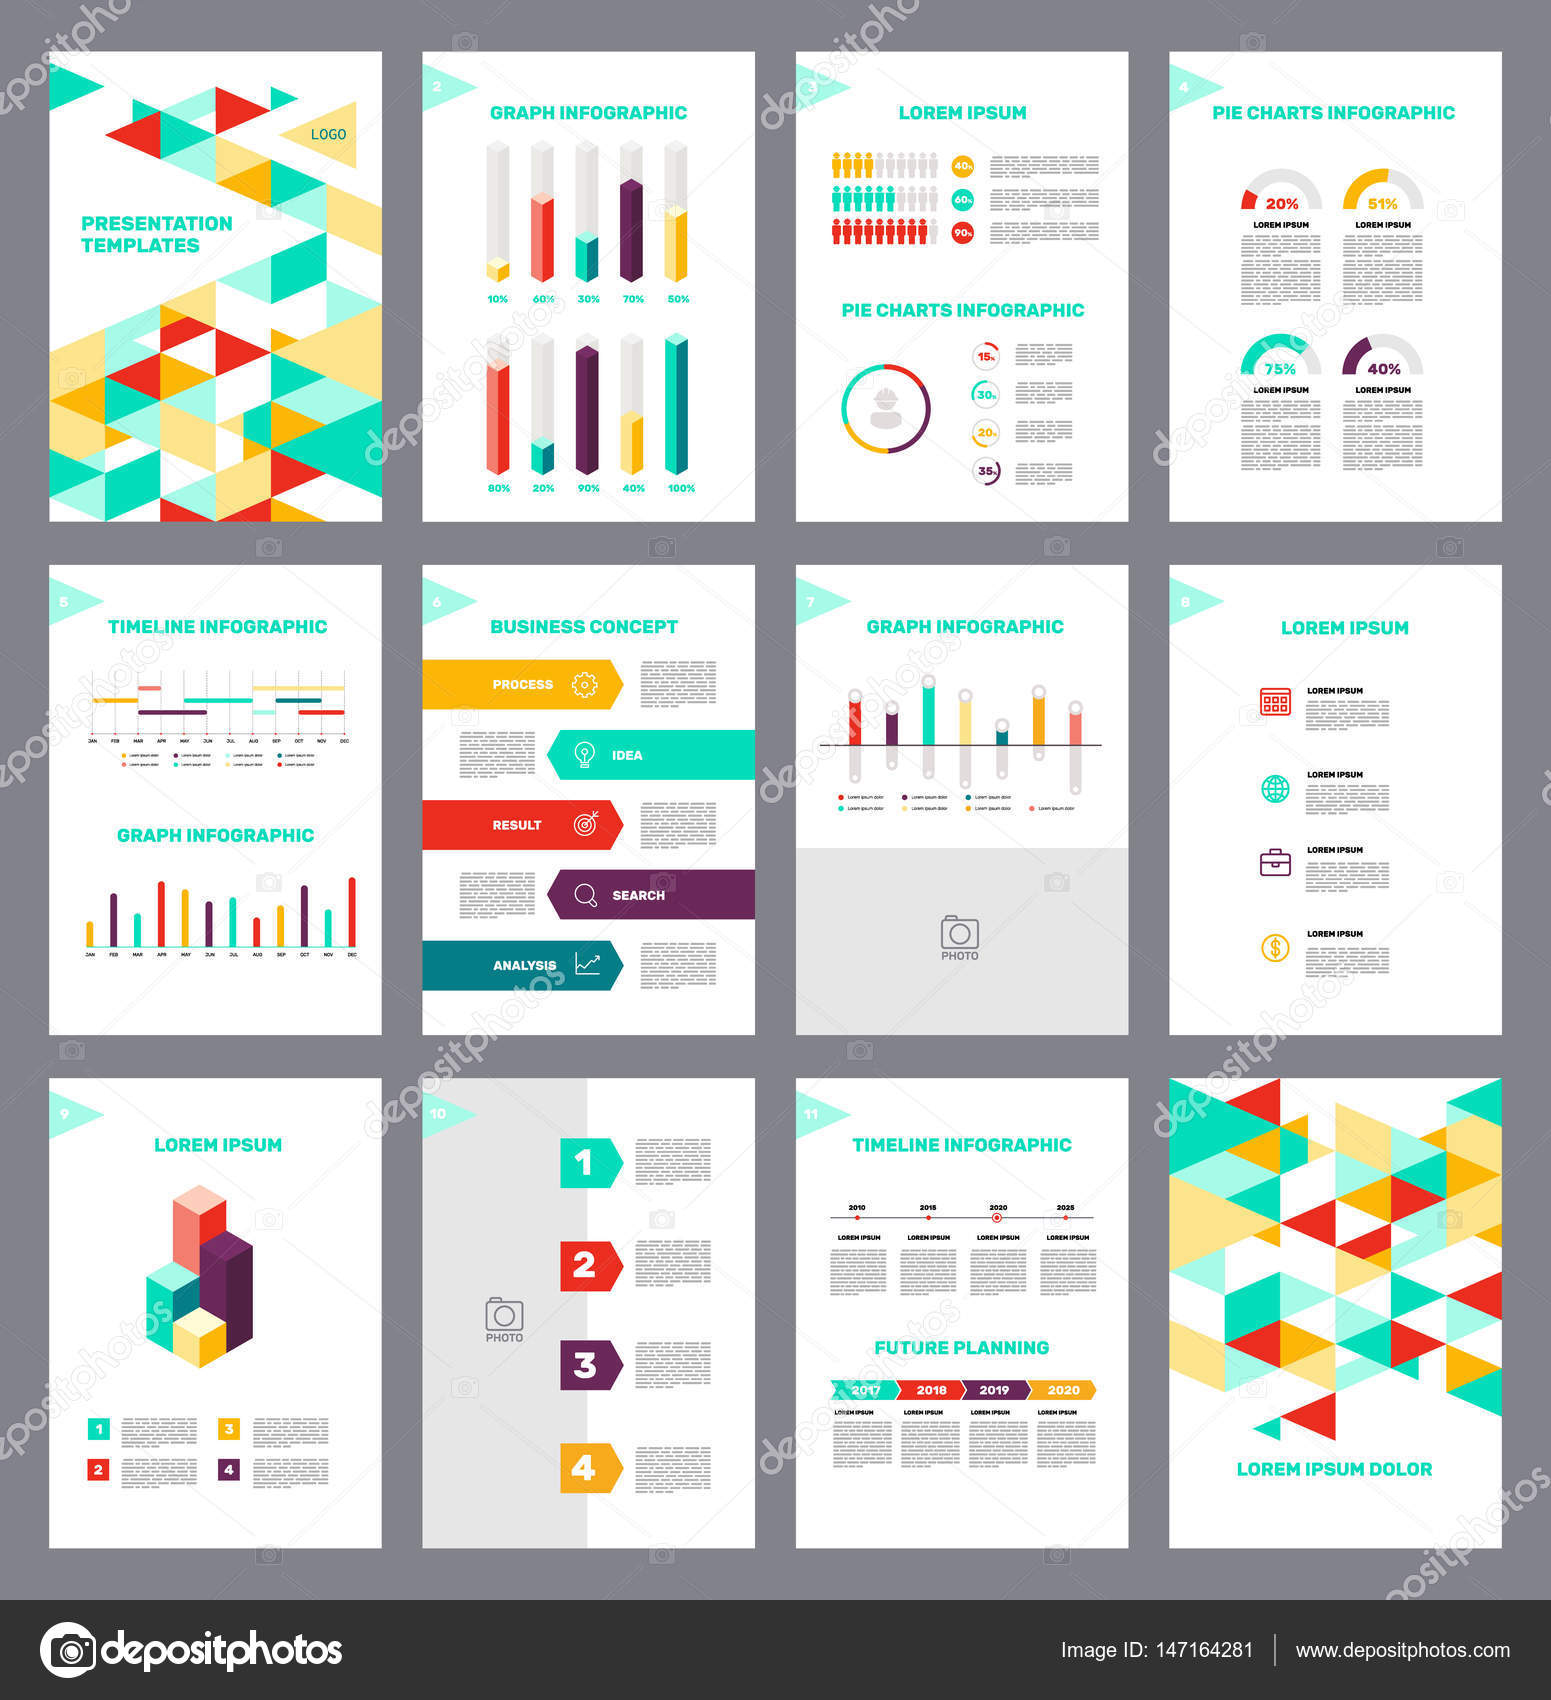 Infographic layout template